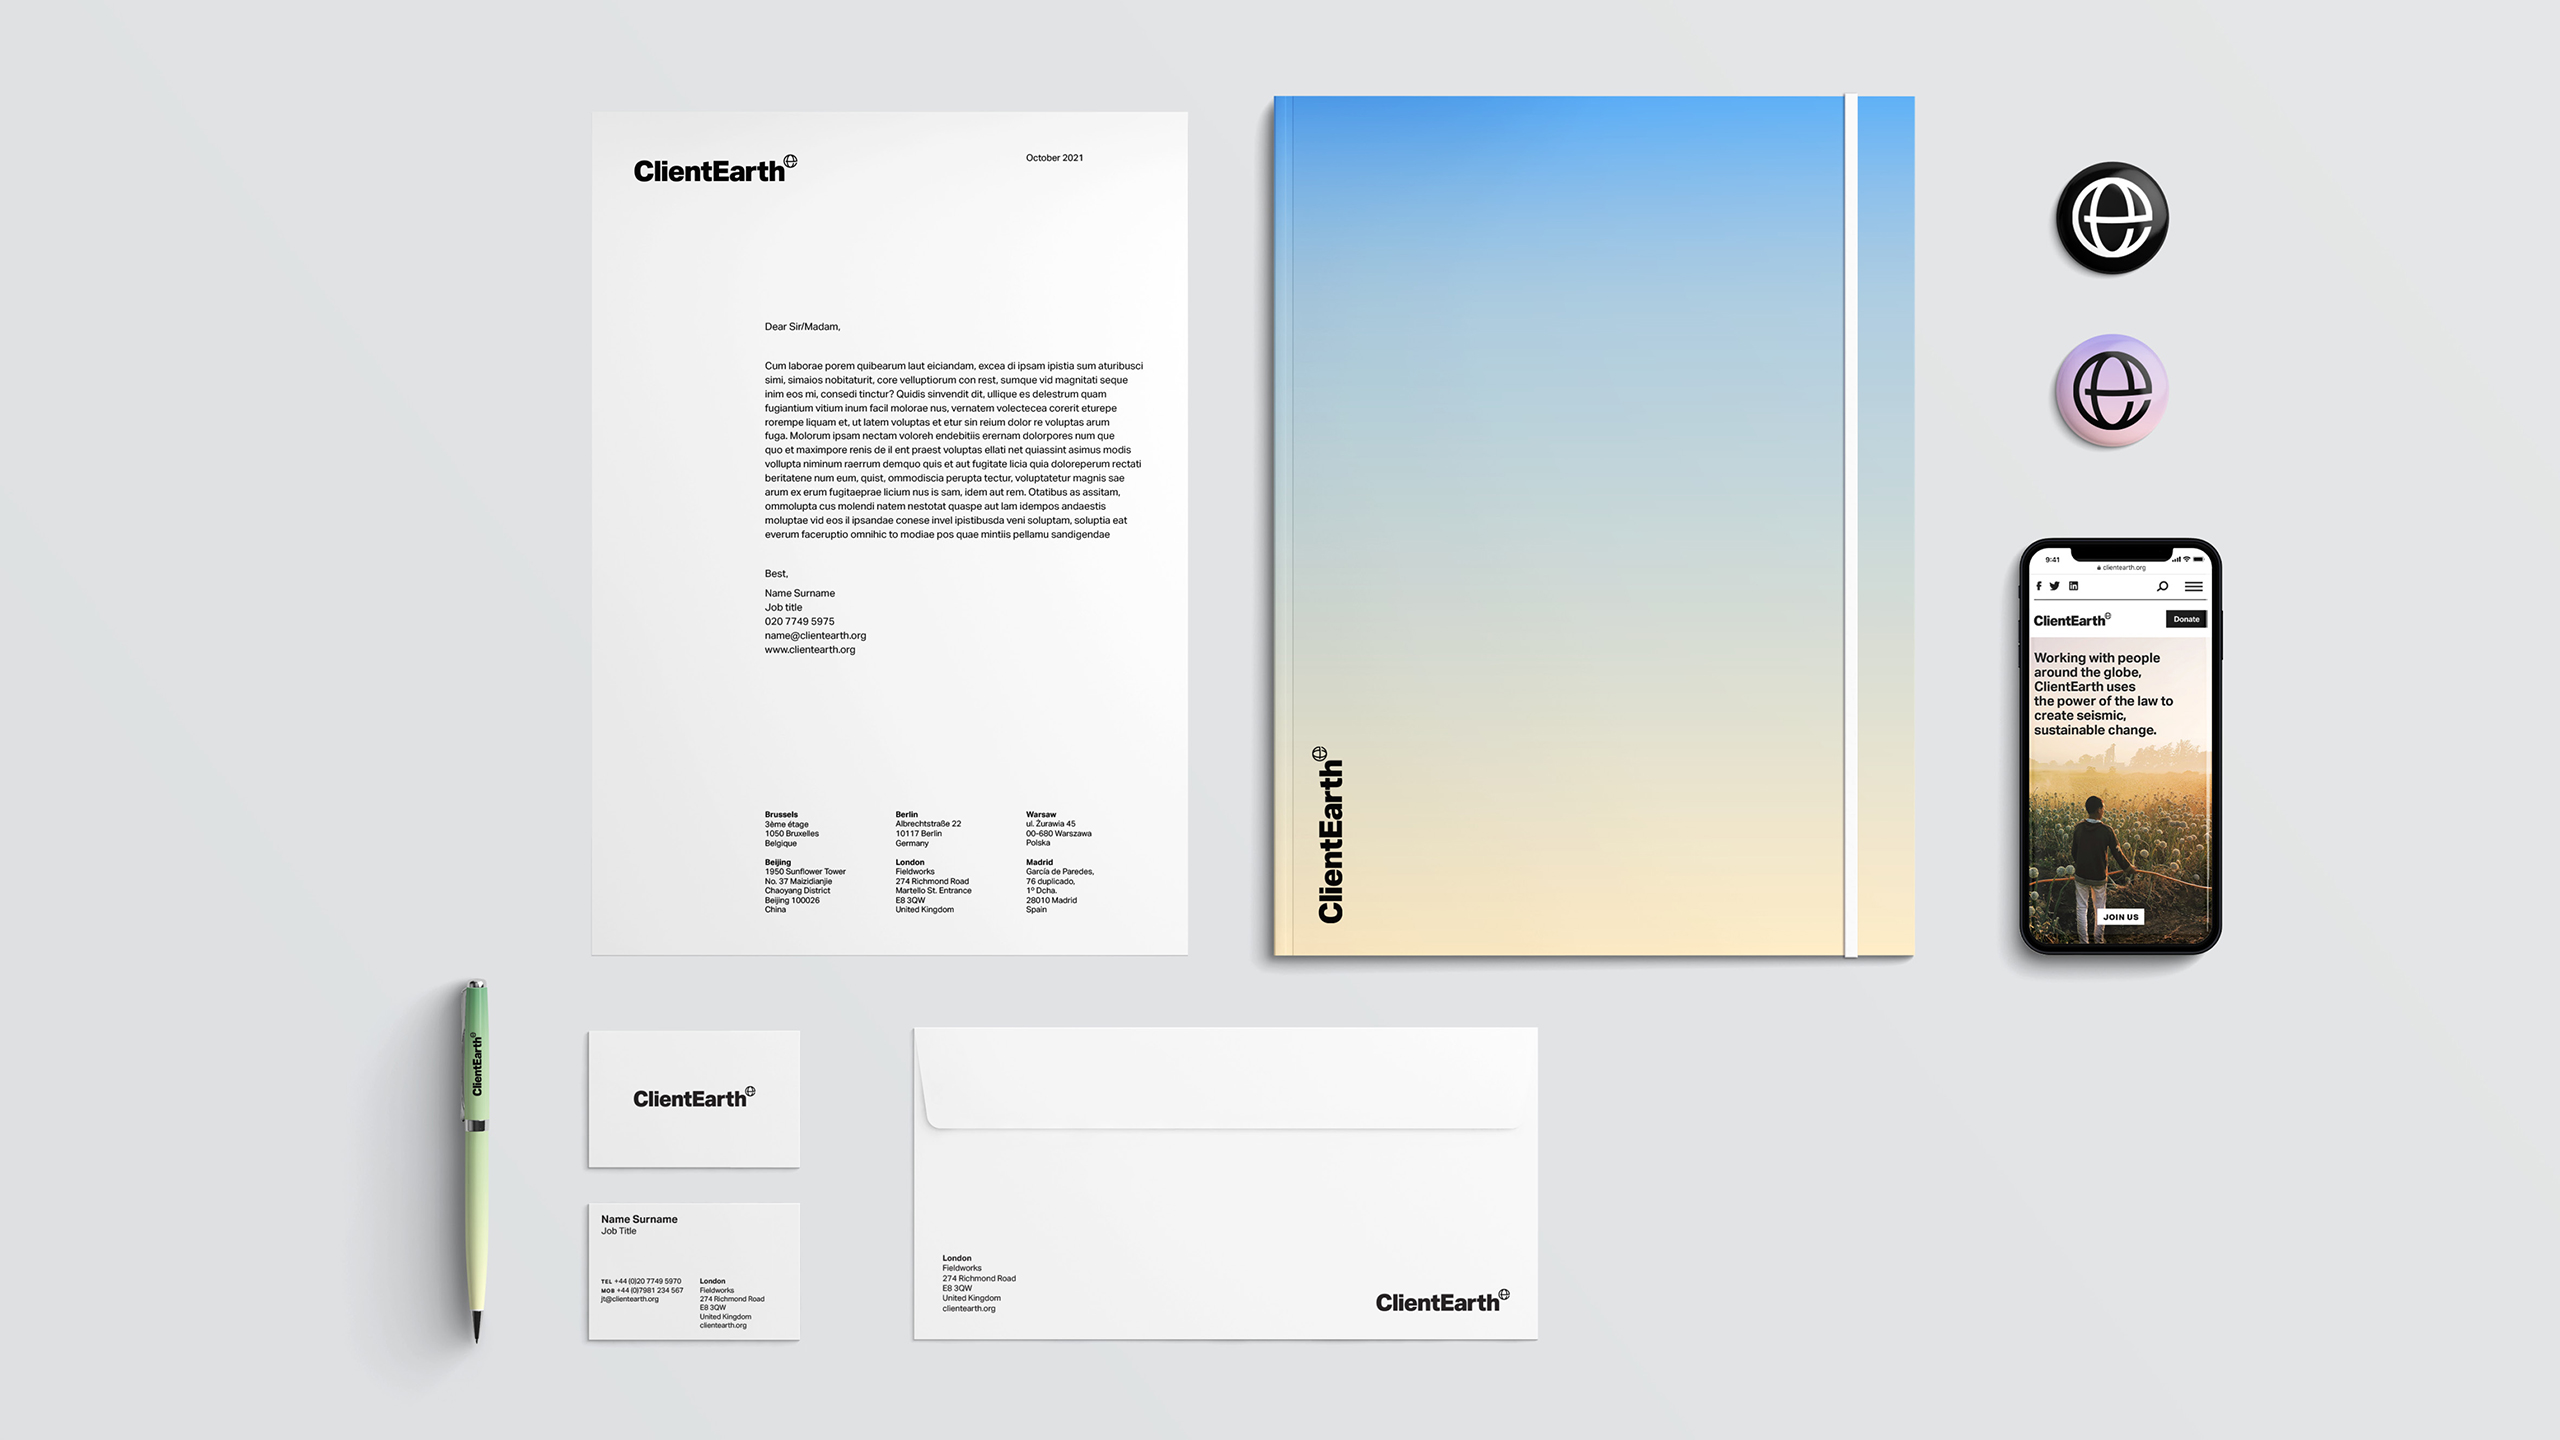 ClientEarth stationery. Strategy and creative direction by Apropos. Design and art direction by Erica Dorn. Strategy and copywriting by Clare Aitken.